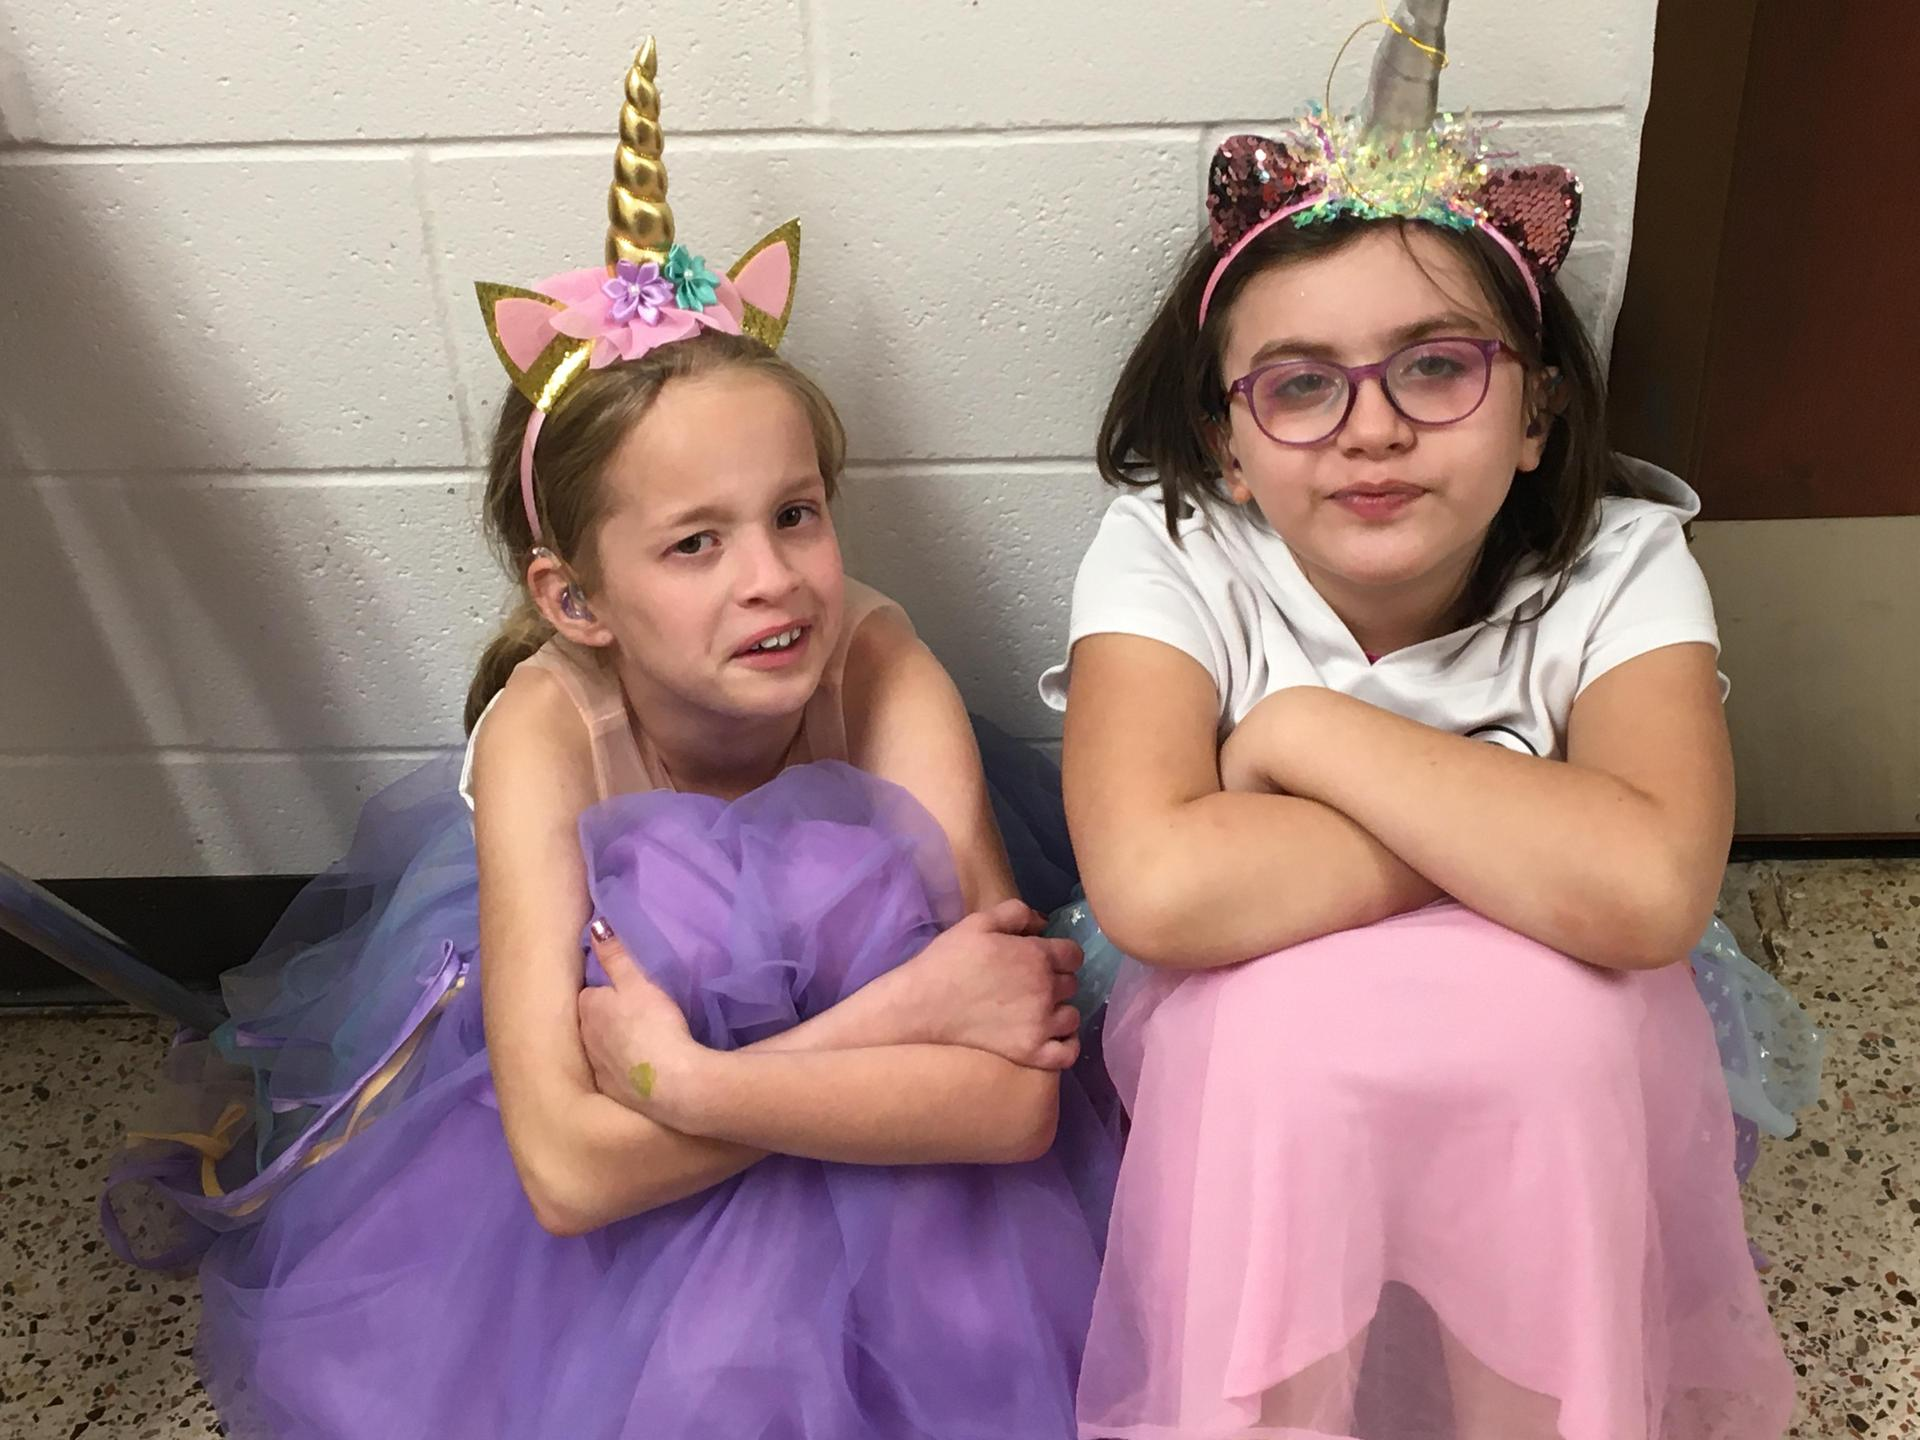 Two little girl unicorns sitting with their backs to a wall